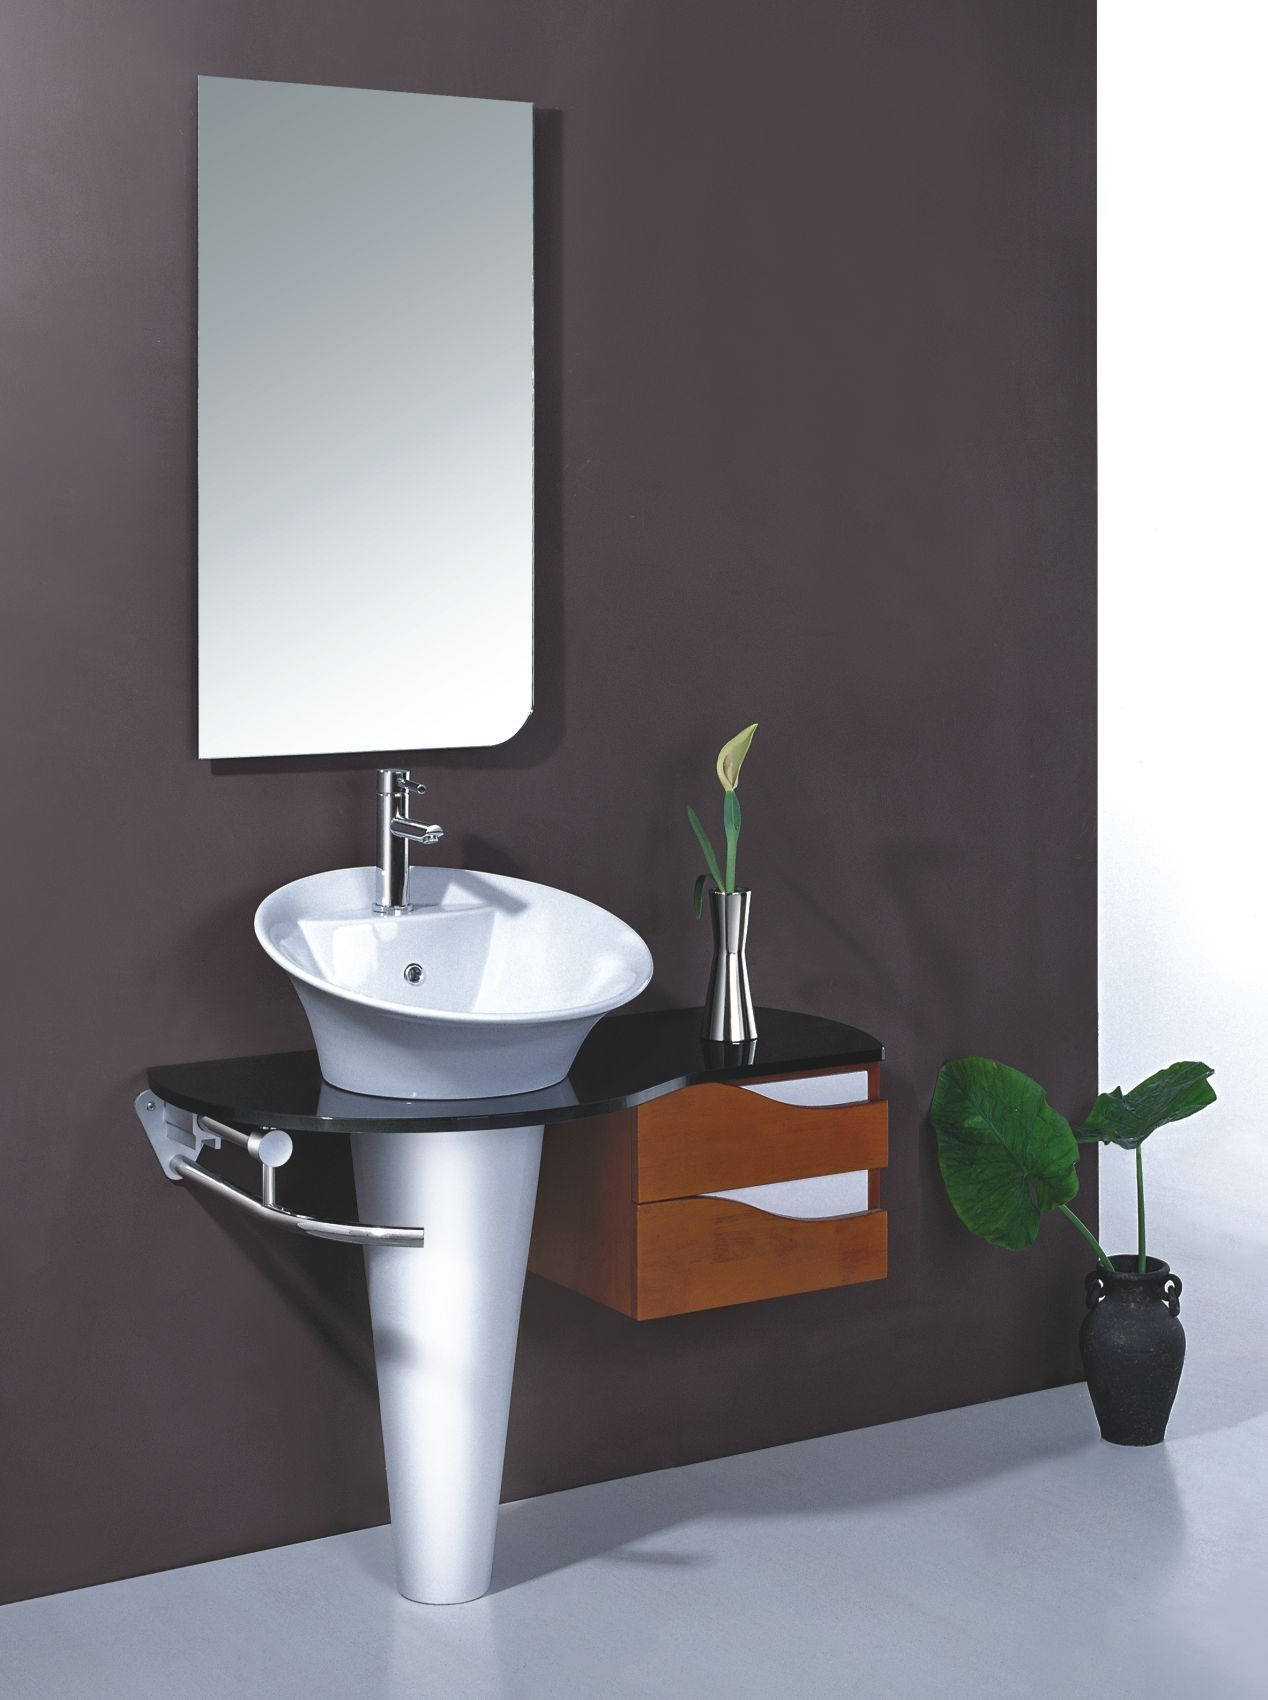 100 Bathroom Sinks for Small Bathrooms Interior House Paint Colors Check more at